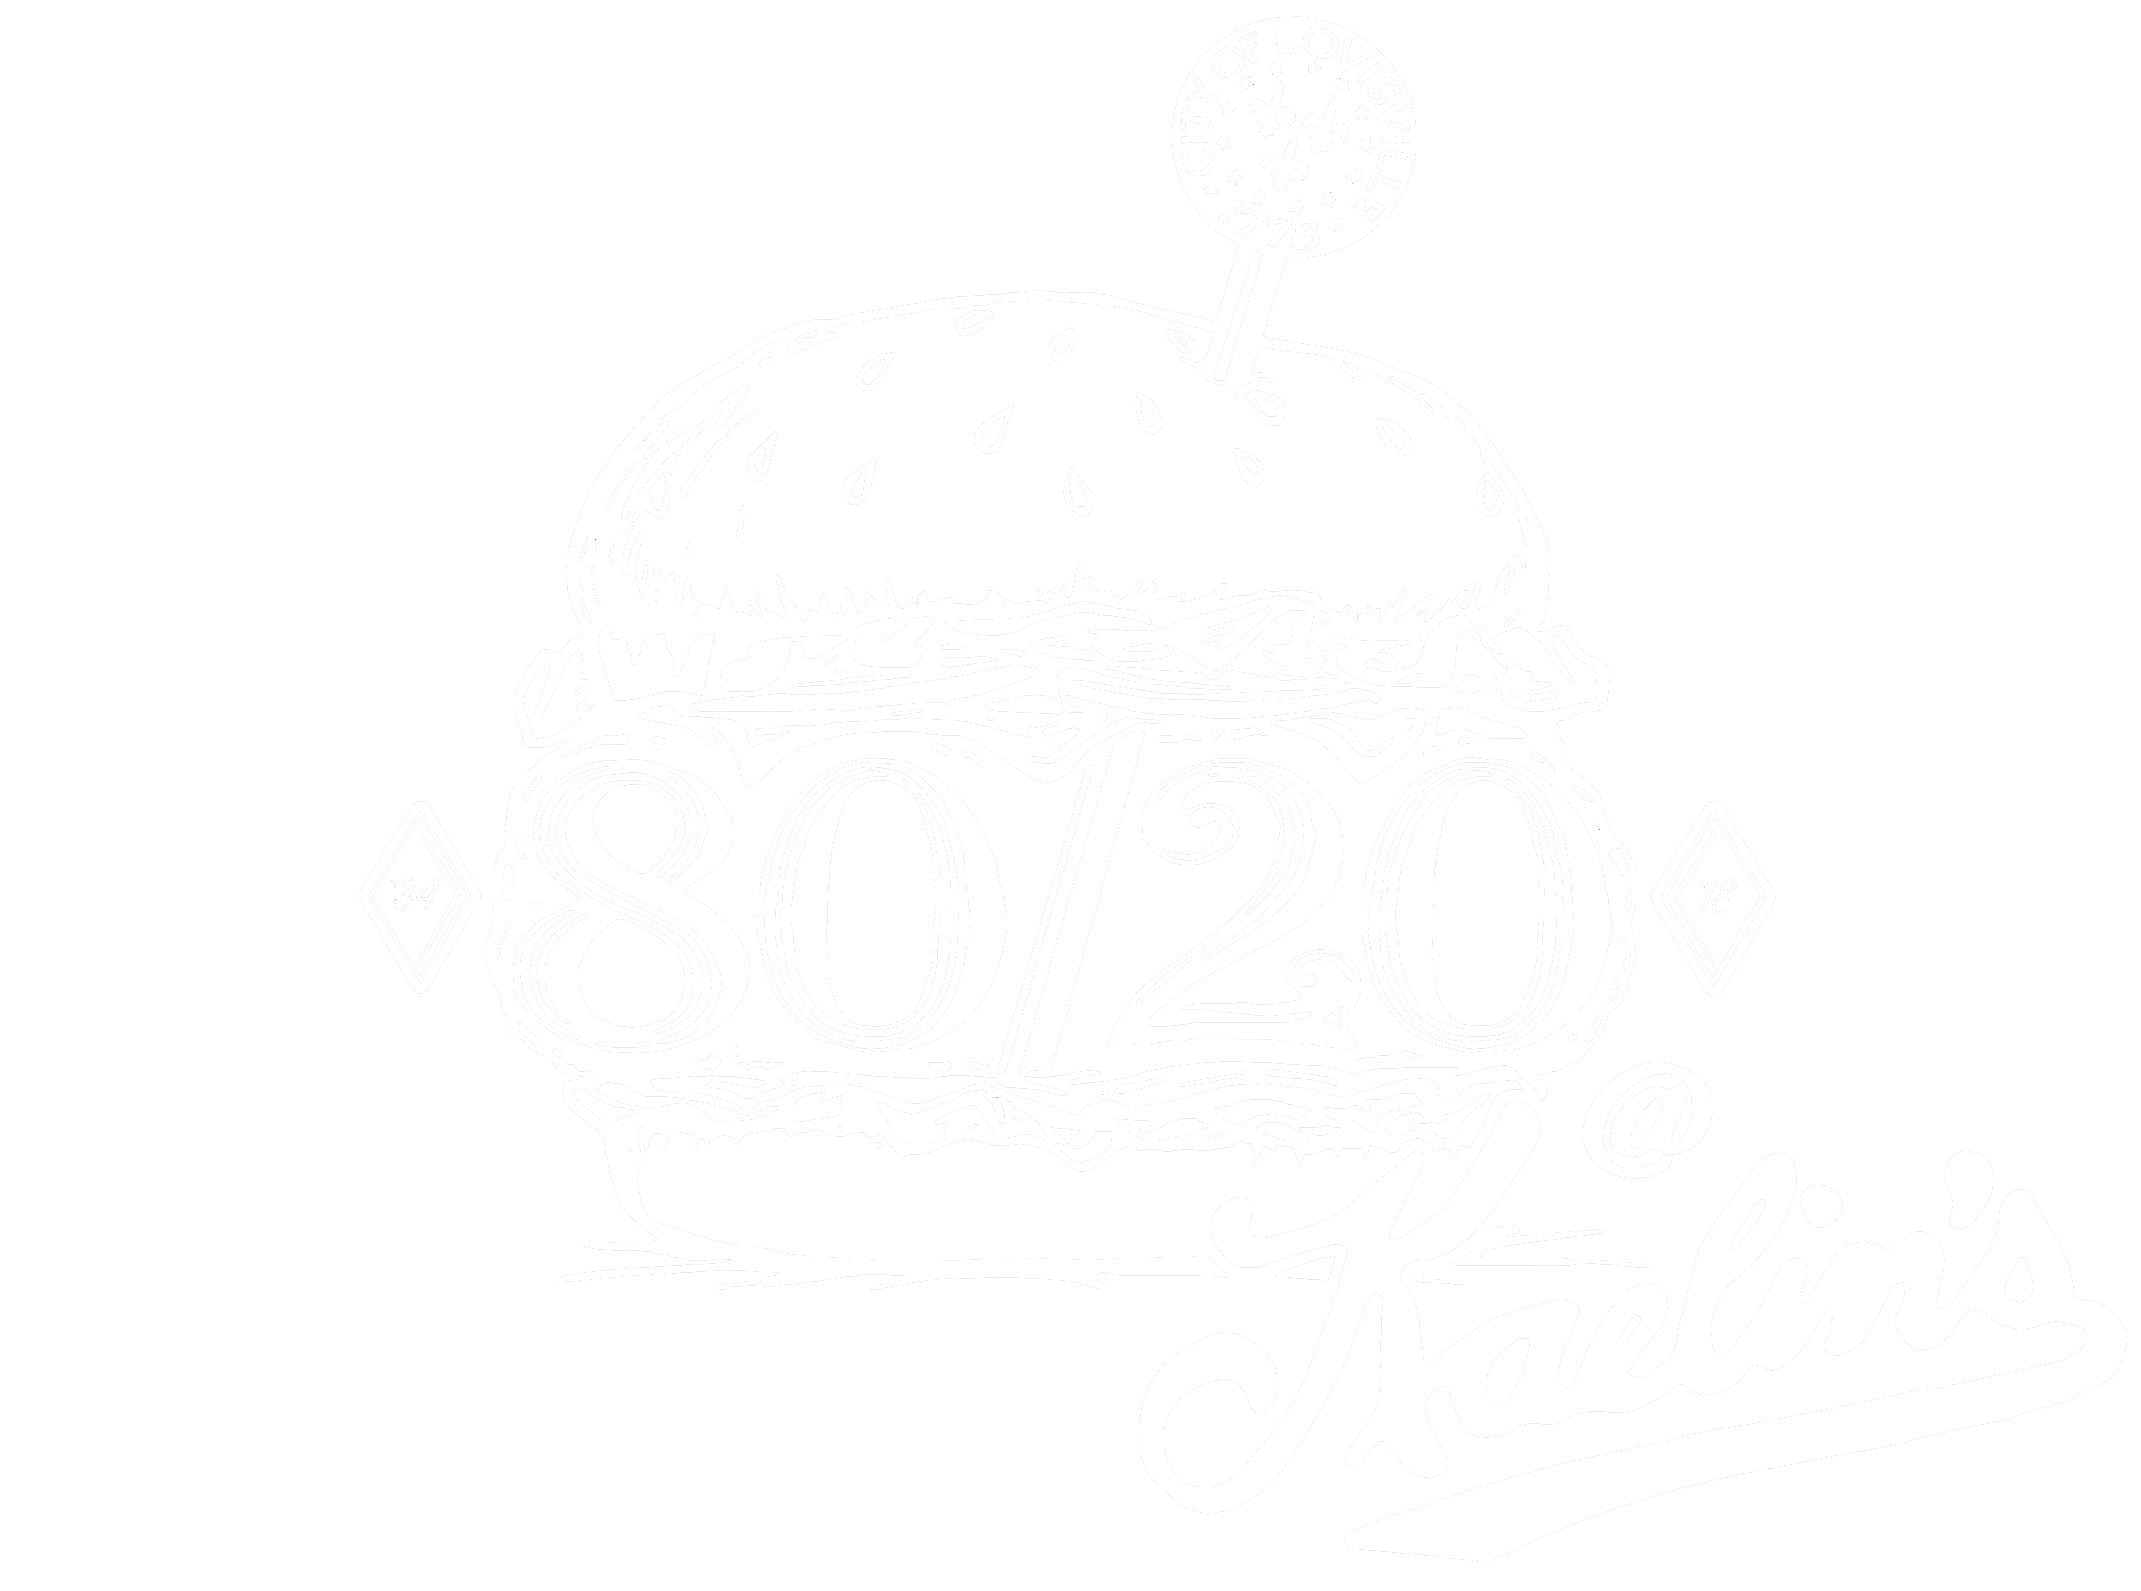 80/20 at Kaelin's | A Louisville Restaurant And Ice Cream parlor | 8020 Home Of The Original Cheeseburger | Catering, Private Dining, Party space, Bar and Family Dining 502-200-8020